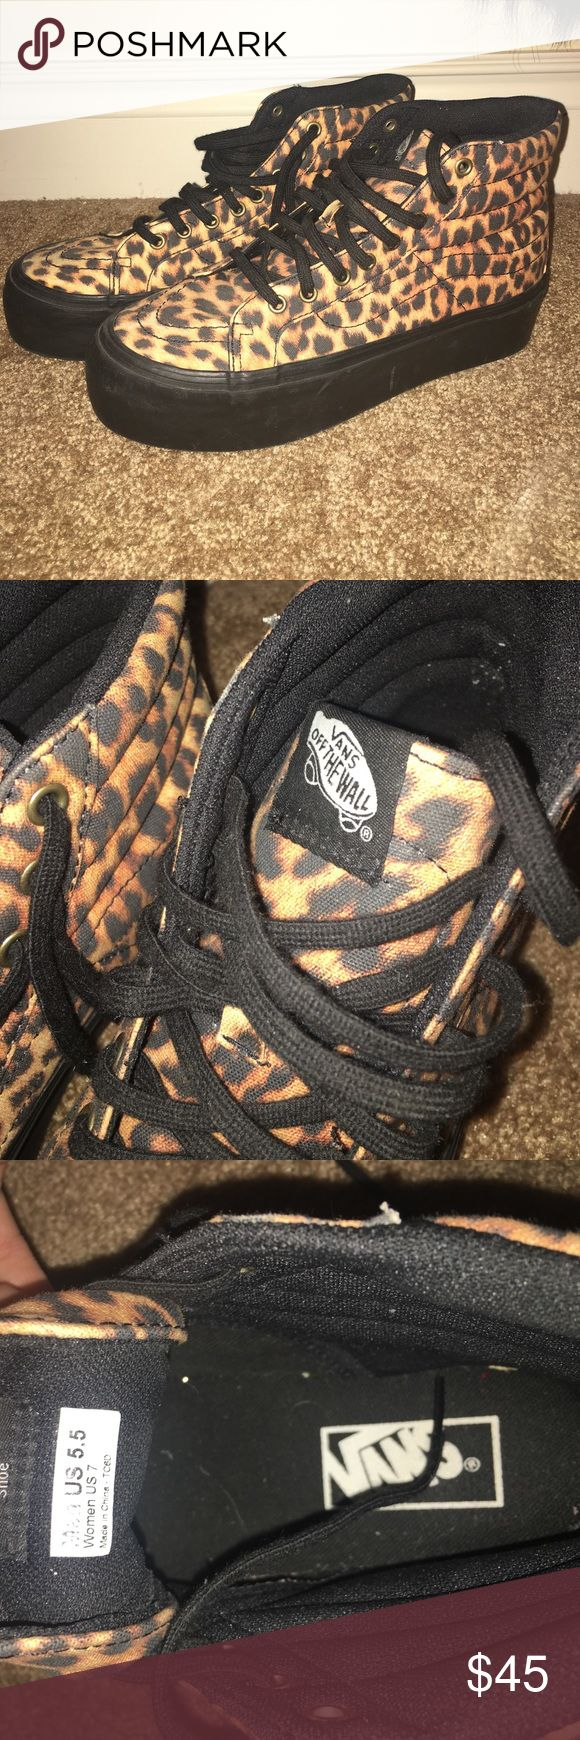 Leopard Vans This are in great condition! They are also platform shoes! Vans Shoes Sneakers